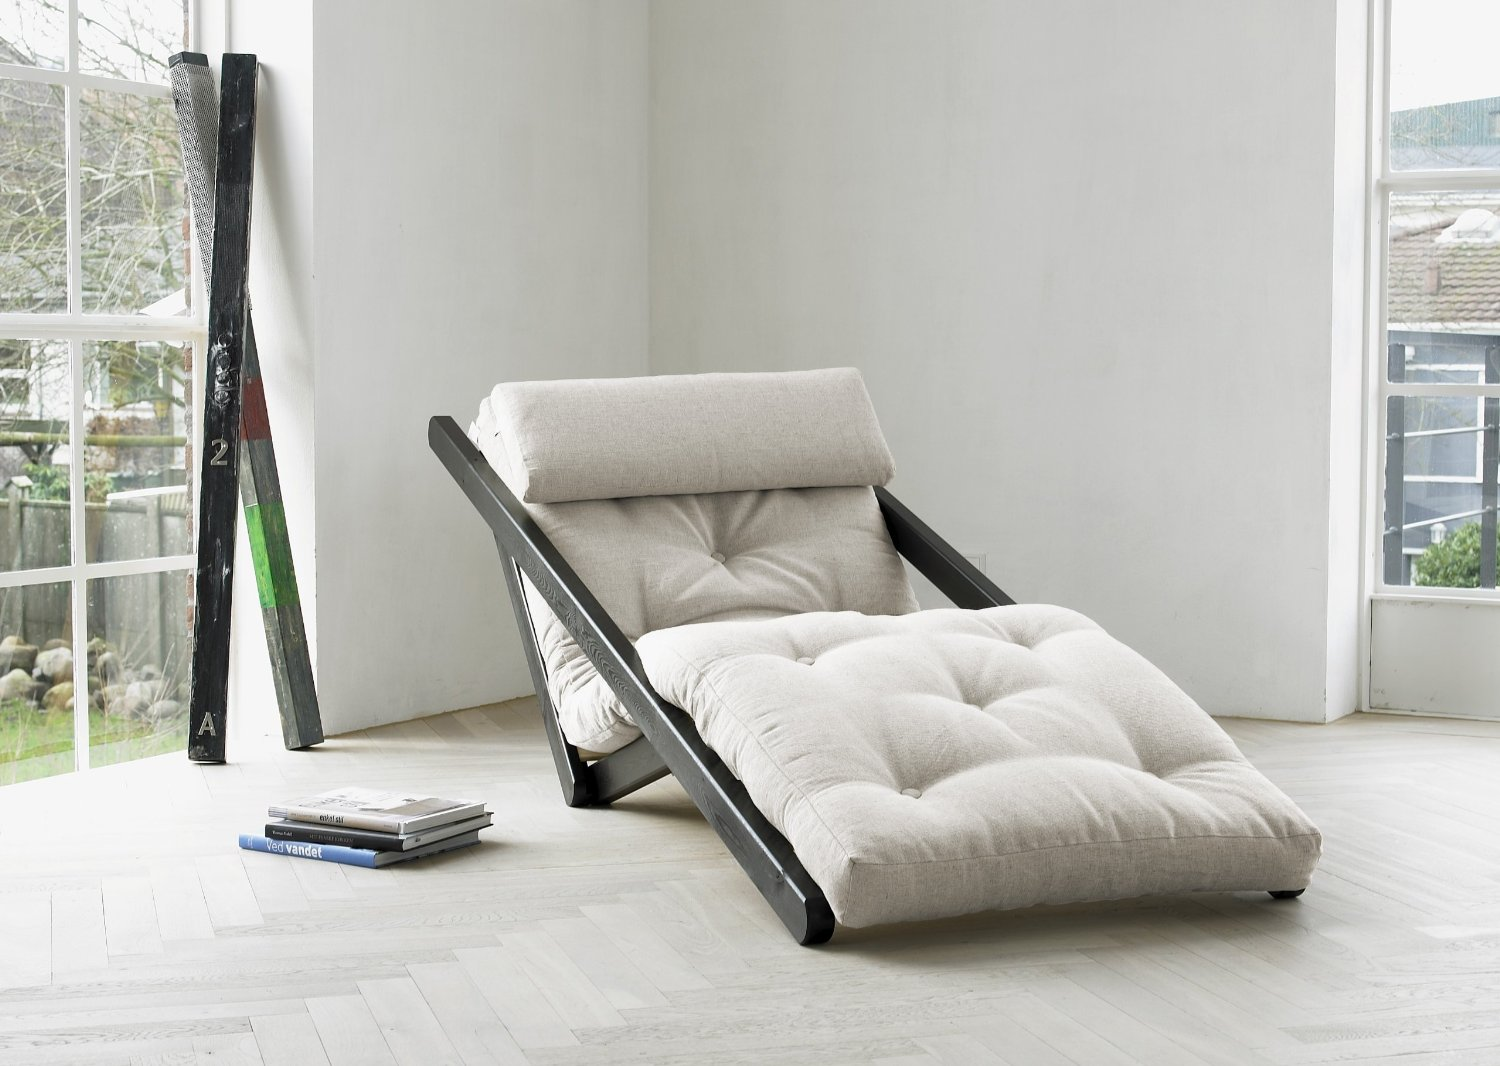 Futon Lounge Shoebox Dwelling Finding Comfort Style And Dignity In Small Es